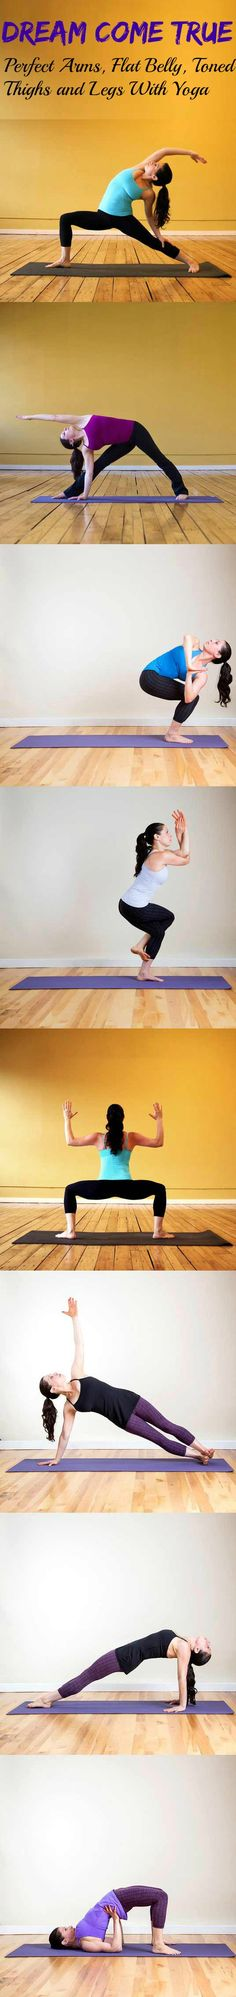 Dream Come True – Perfect Arms, Flat Belly, Toned Thighs and Legs With Yoga